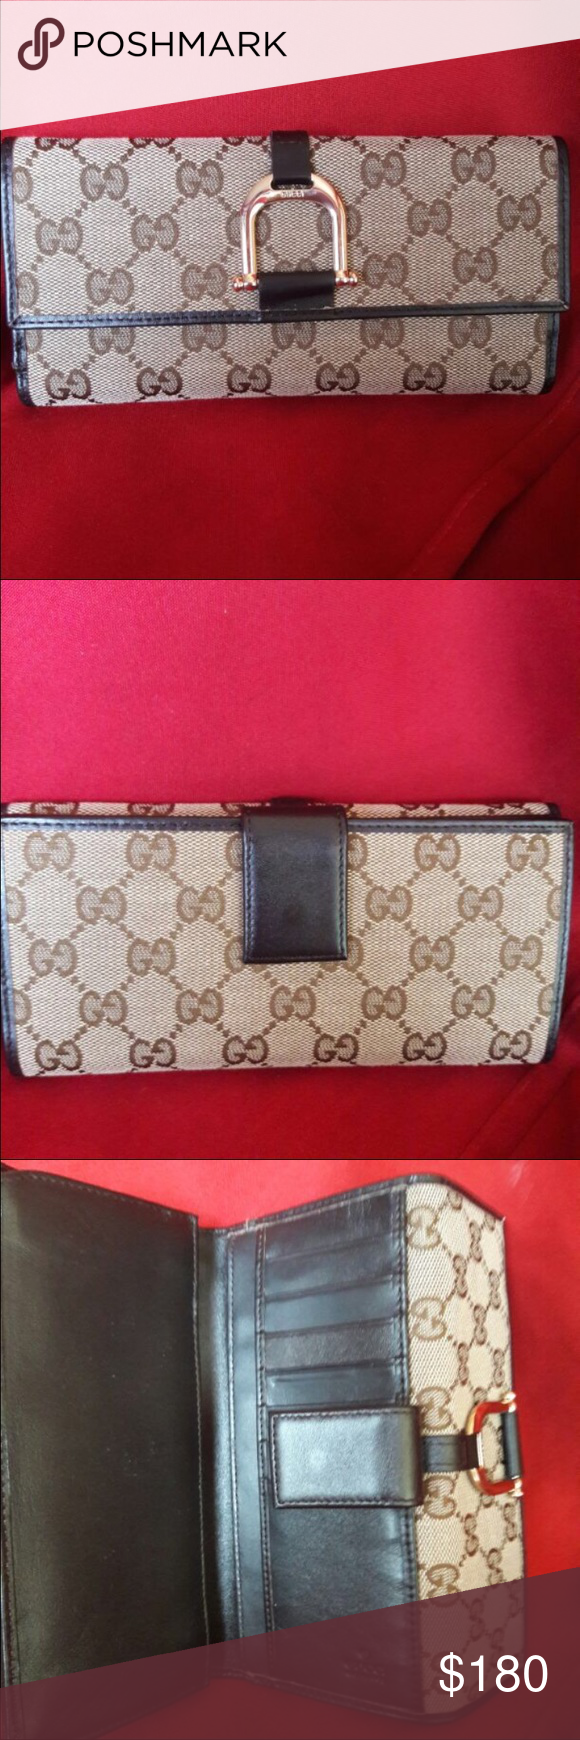 Gucci wallet authentic Authentic Gucci wallet in good condition Gucci Bags Wallets